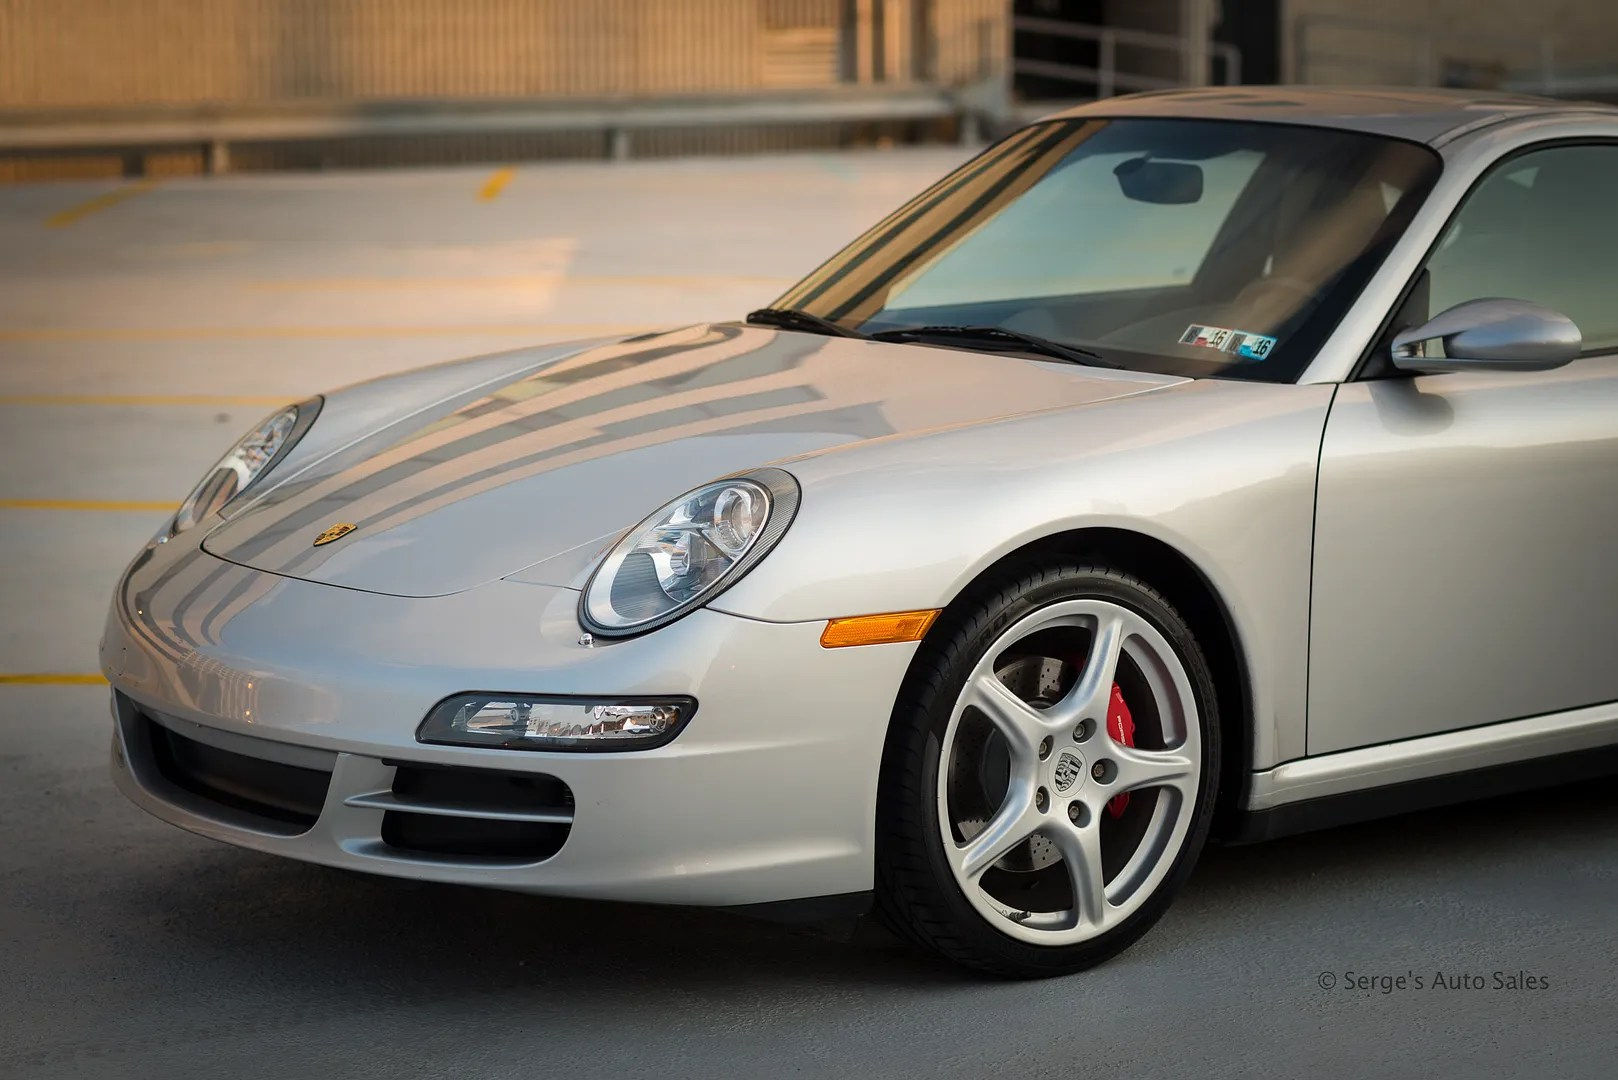 photo Serges-auto-sales-porsche-911-for-sale-scranton-pennsylvania-18_zpso7fyzogh.jpg